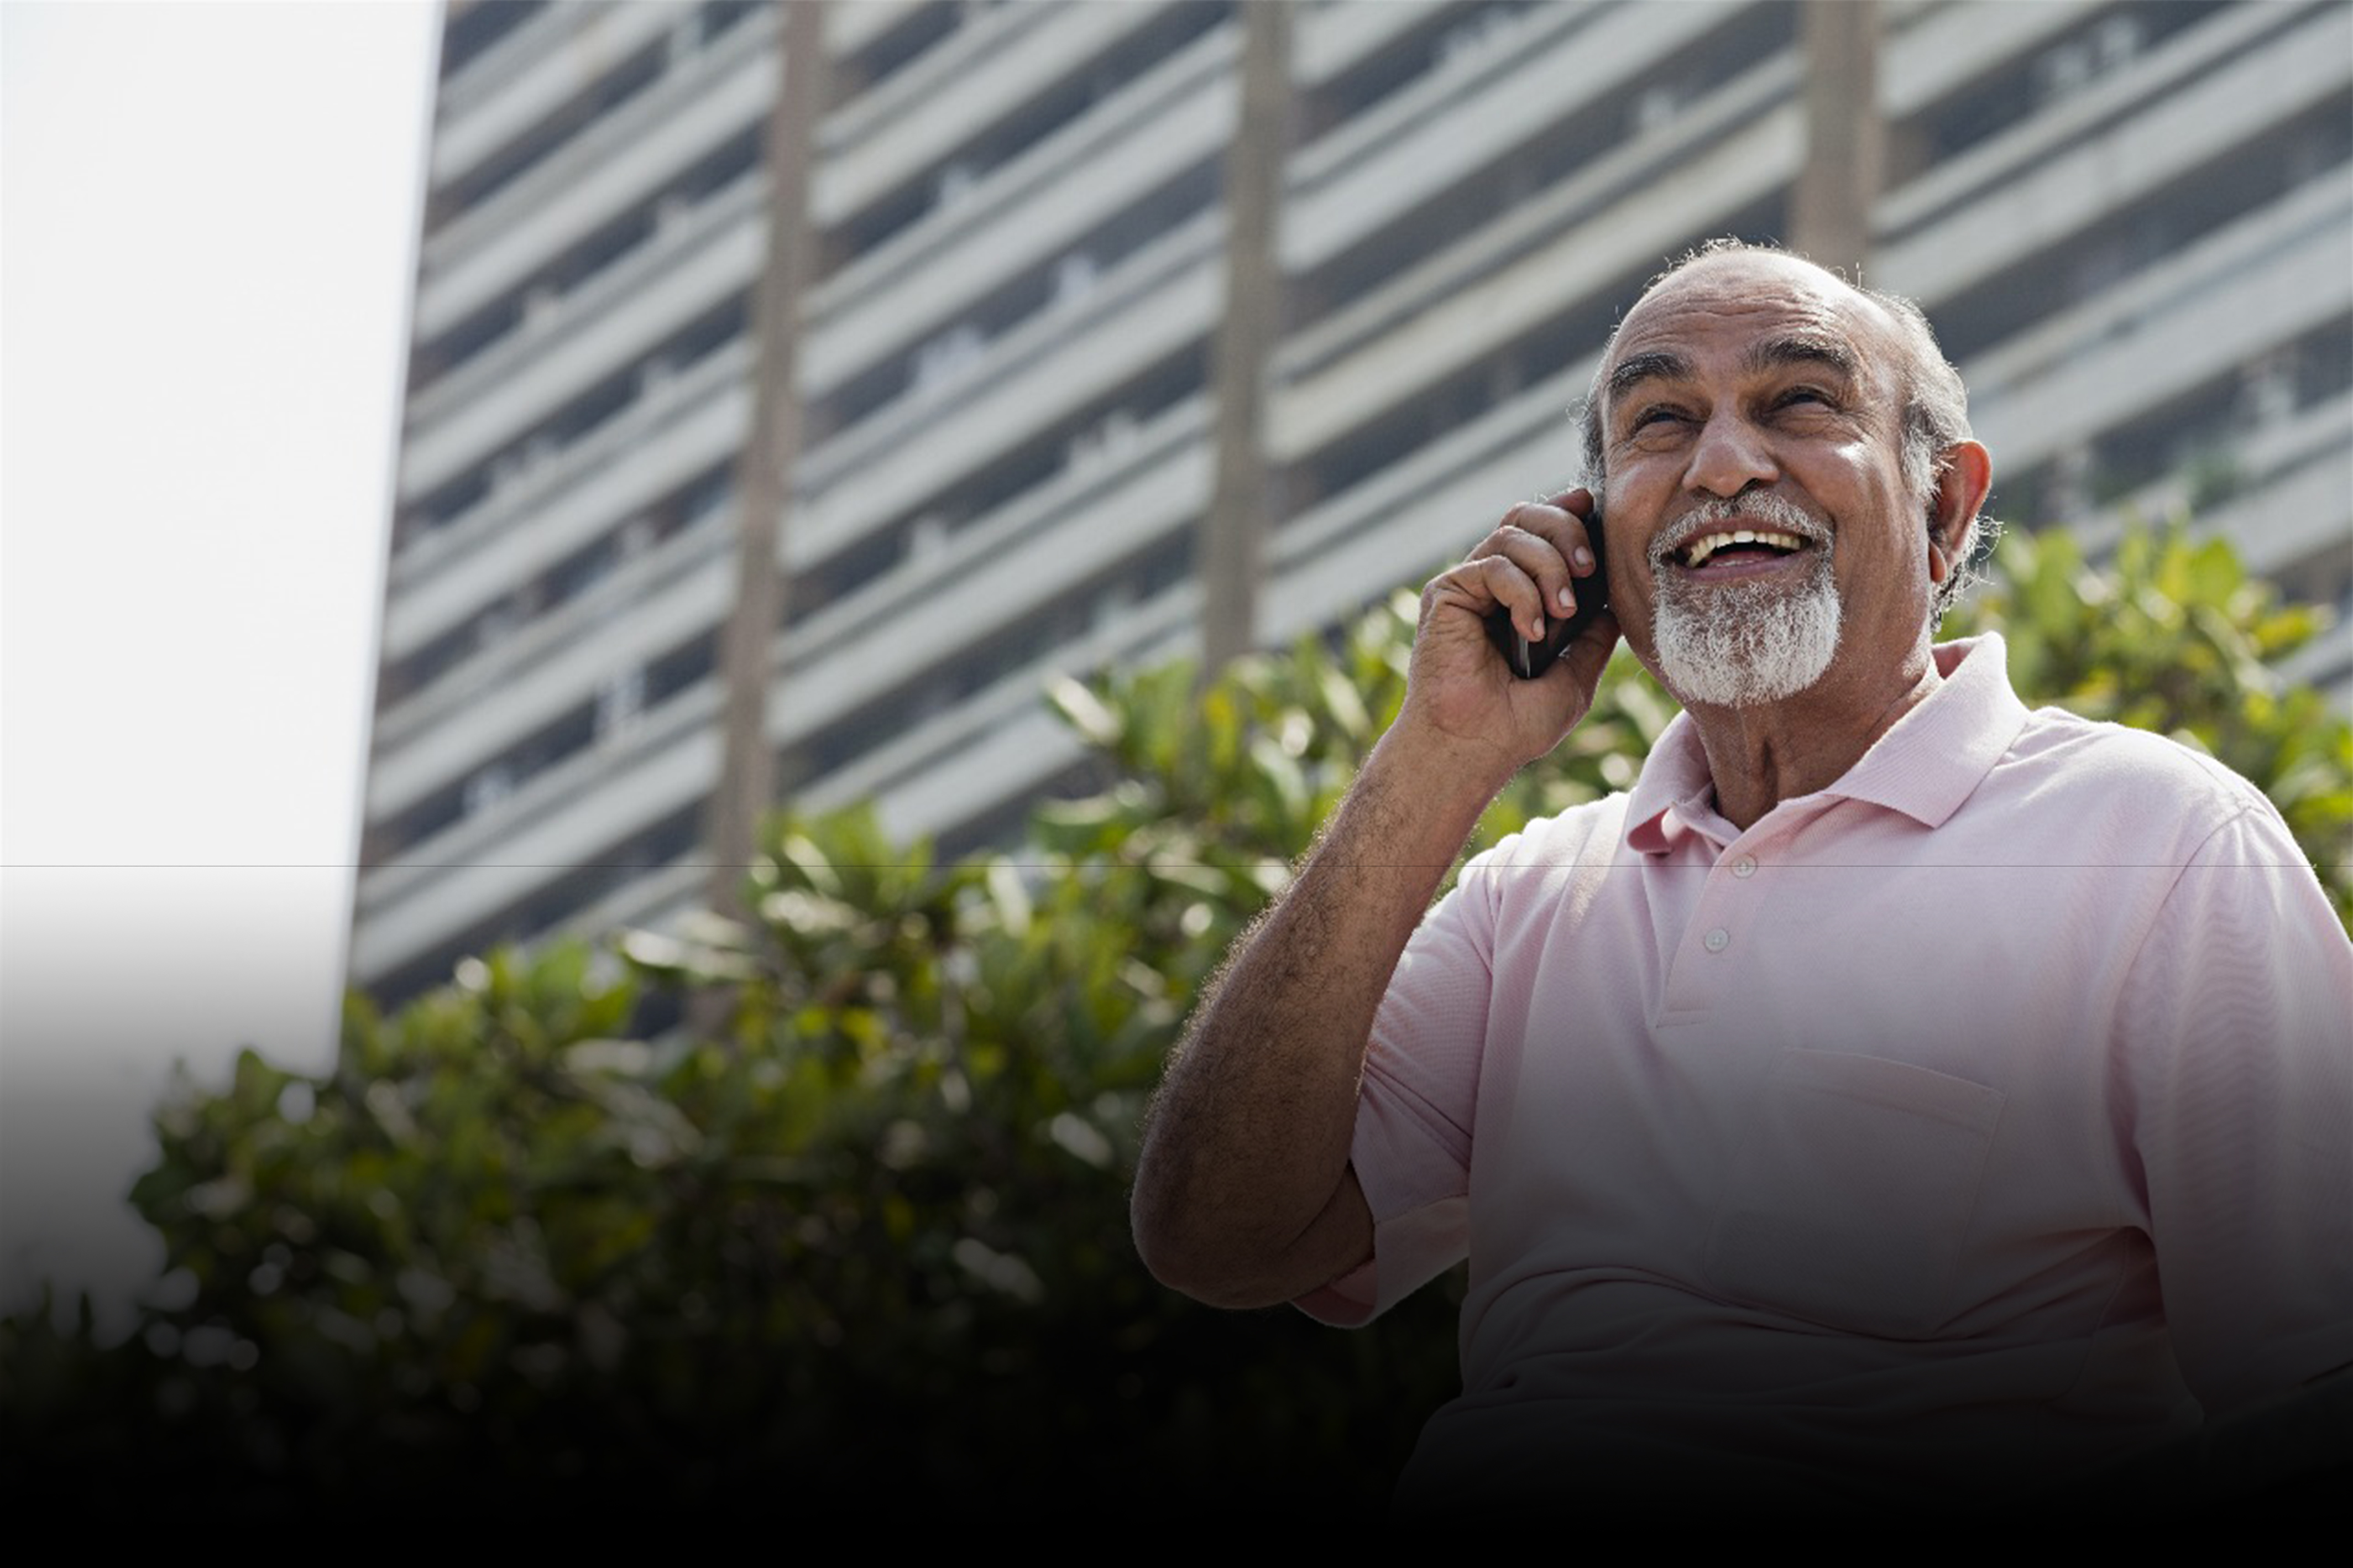 Introduction to Senior-Friendly Phones: The Best Smartphones for Seniors